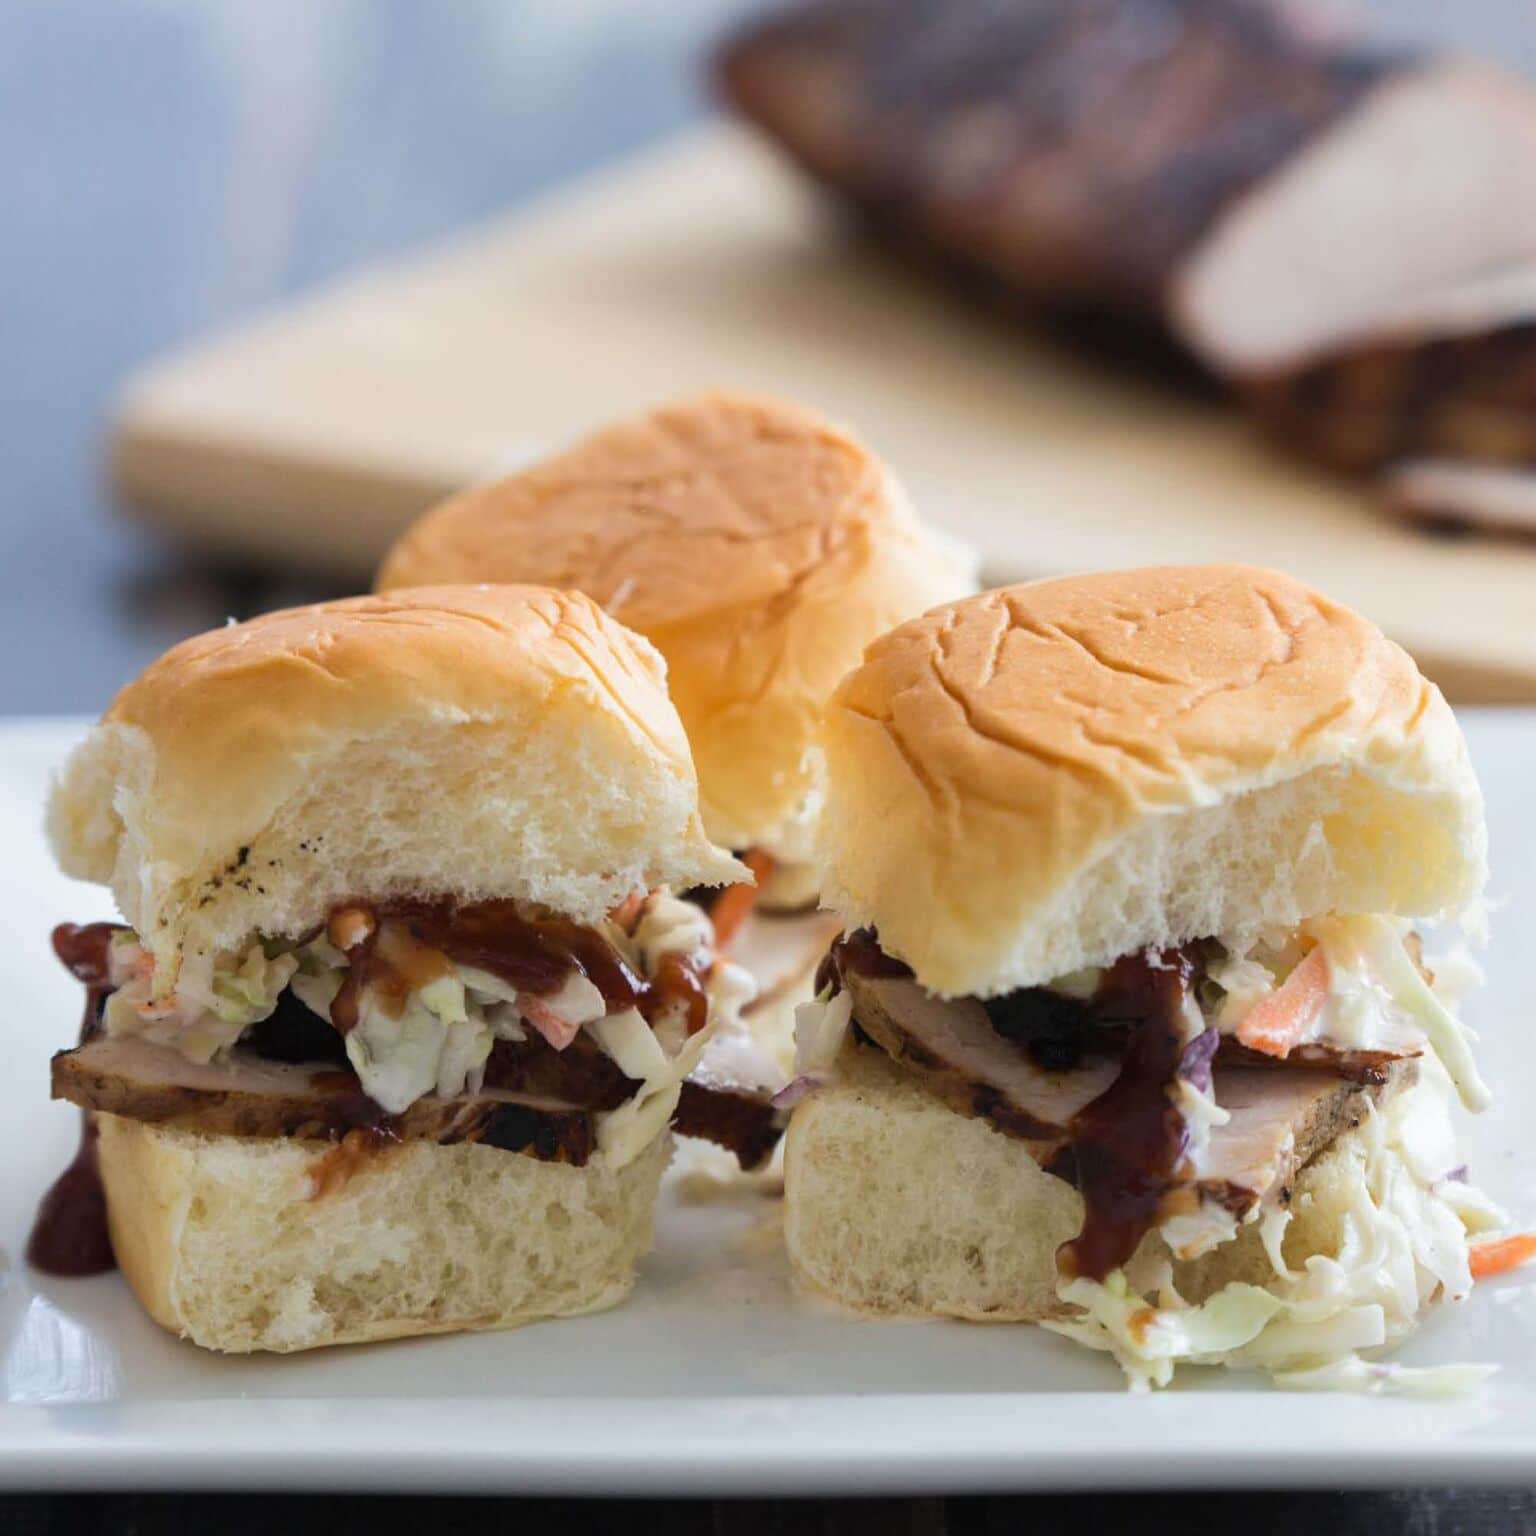 Pork Sliders with Slaw ⎢ Freezer Friendly Dinner Recipe ⎢ 10 Meals in an Hour ⎢ Food Made Simple ⎢ Family Dinner